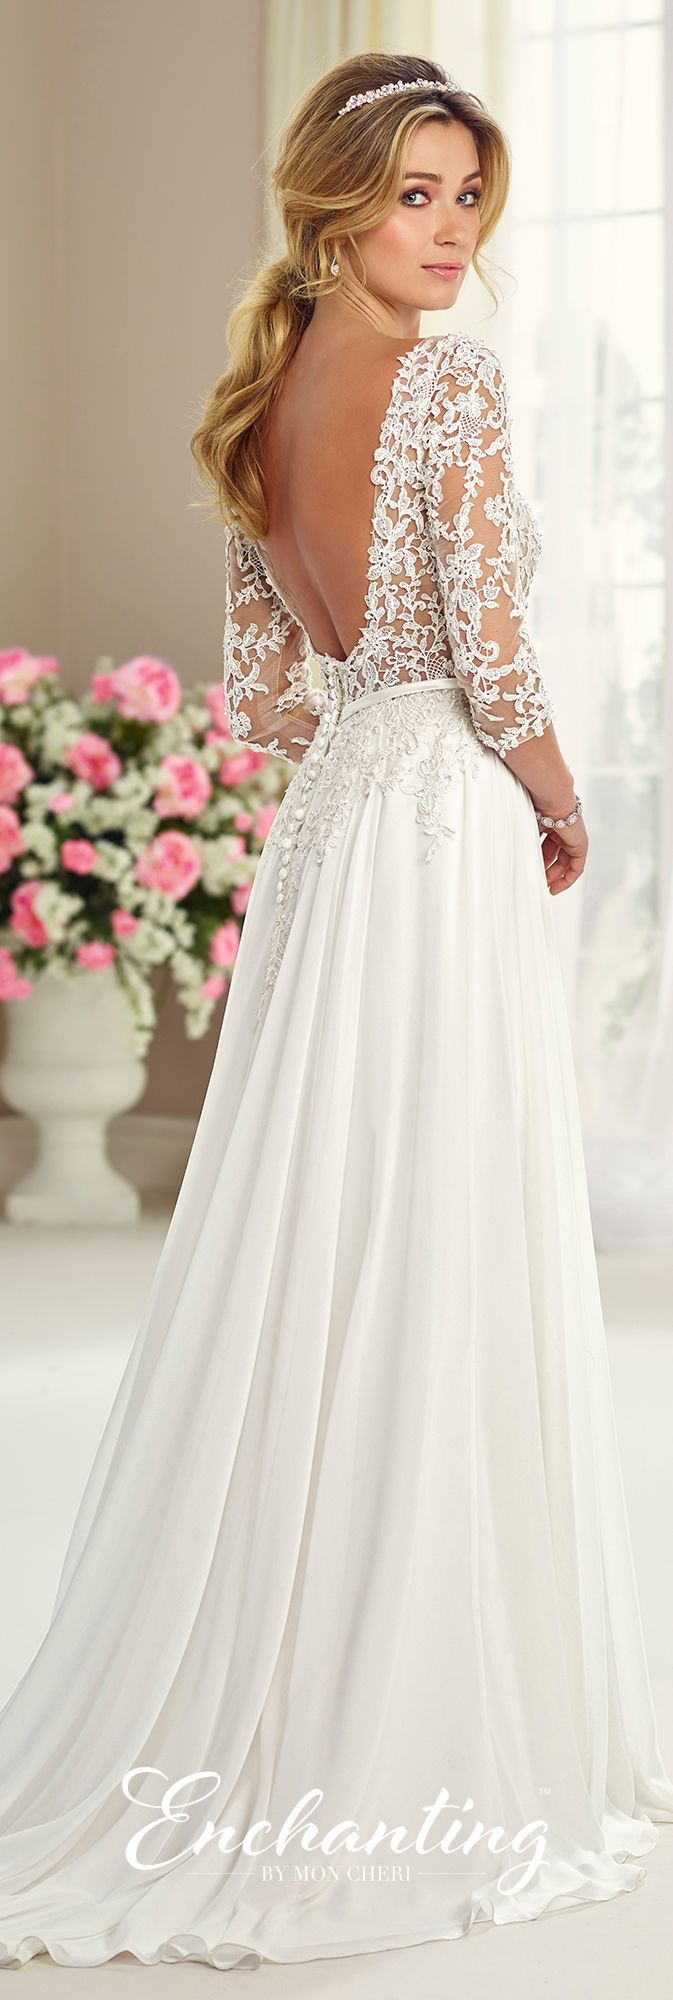 Love the vintage lace look